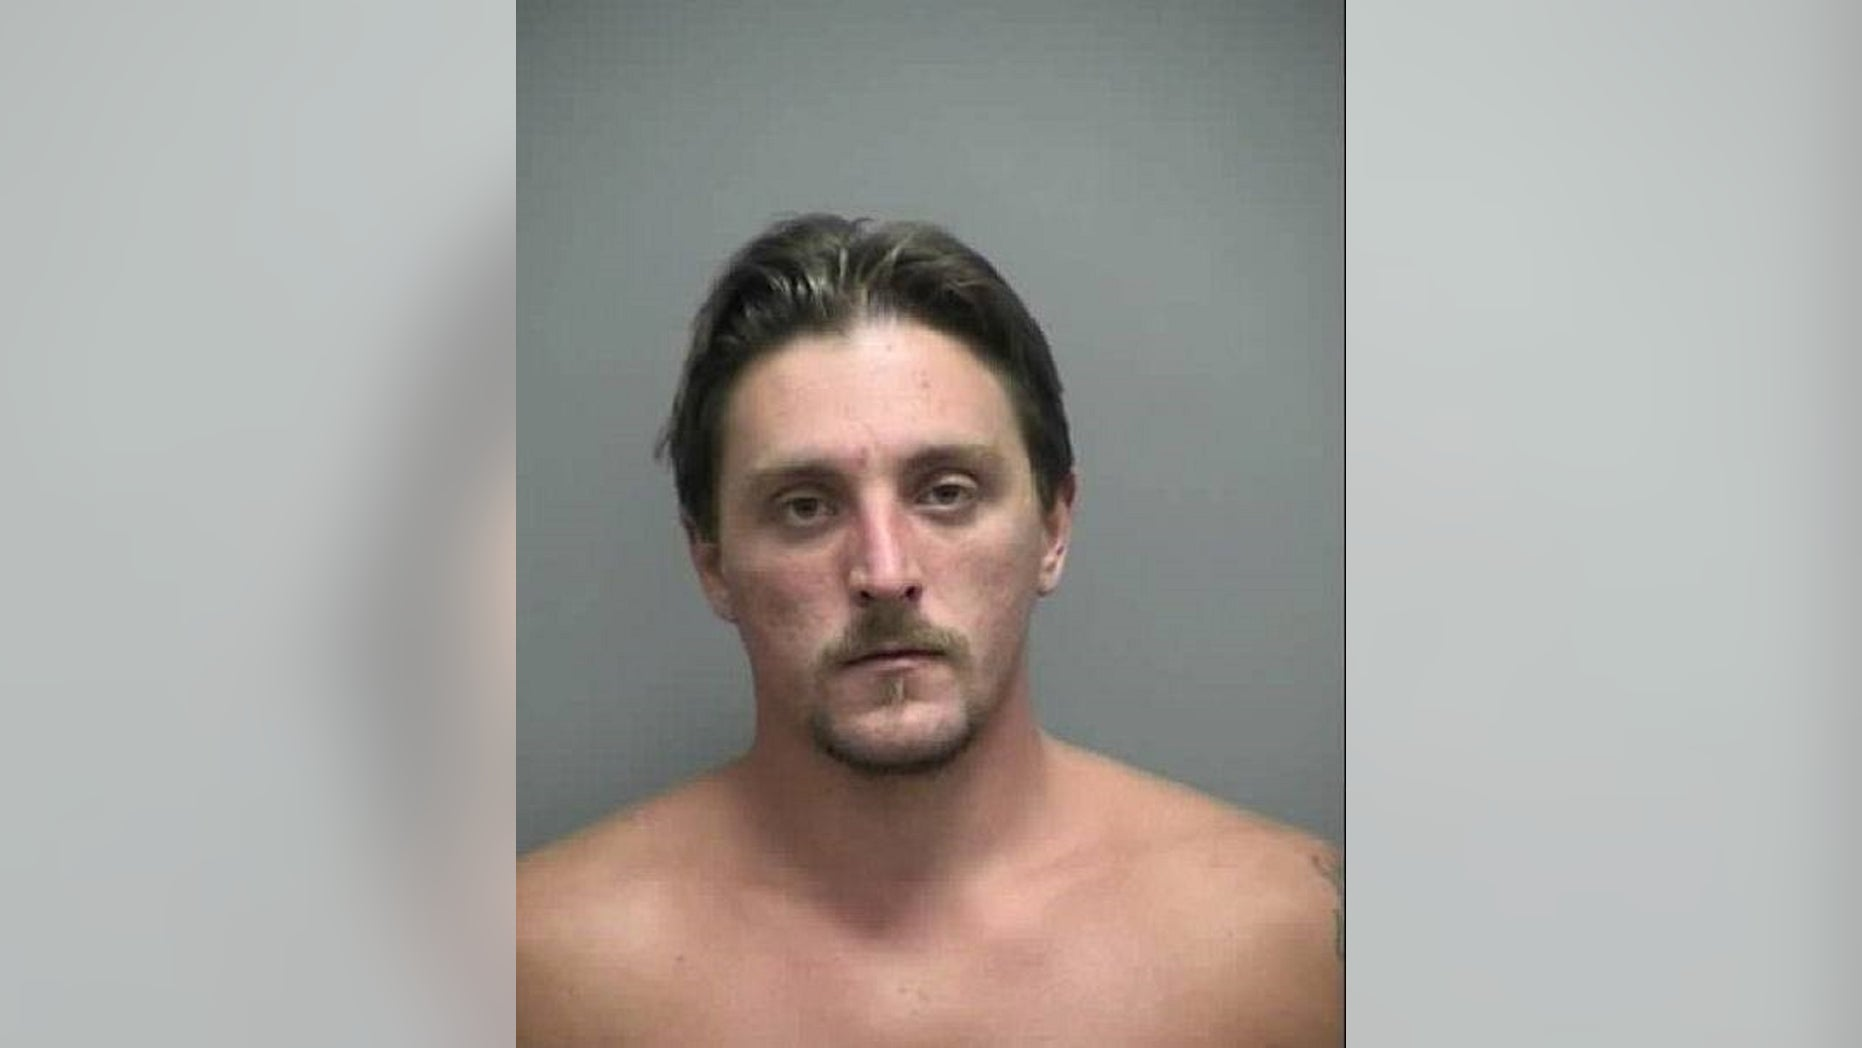 Joseph Jakubowski broke into a gun store near Janesville Wisconsin, and stole 18 guns, two silencers and ammunition, and mailed the manifesto to the White House on April 4, investigators allege.